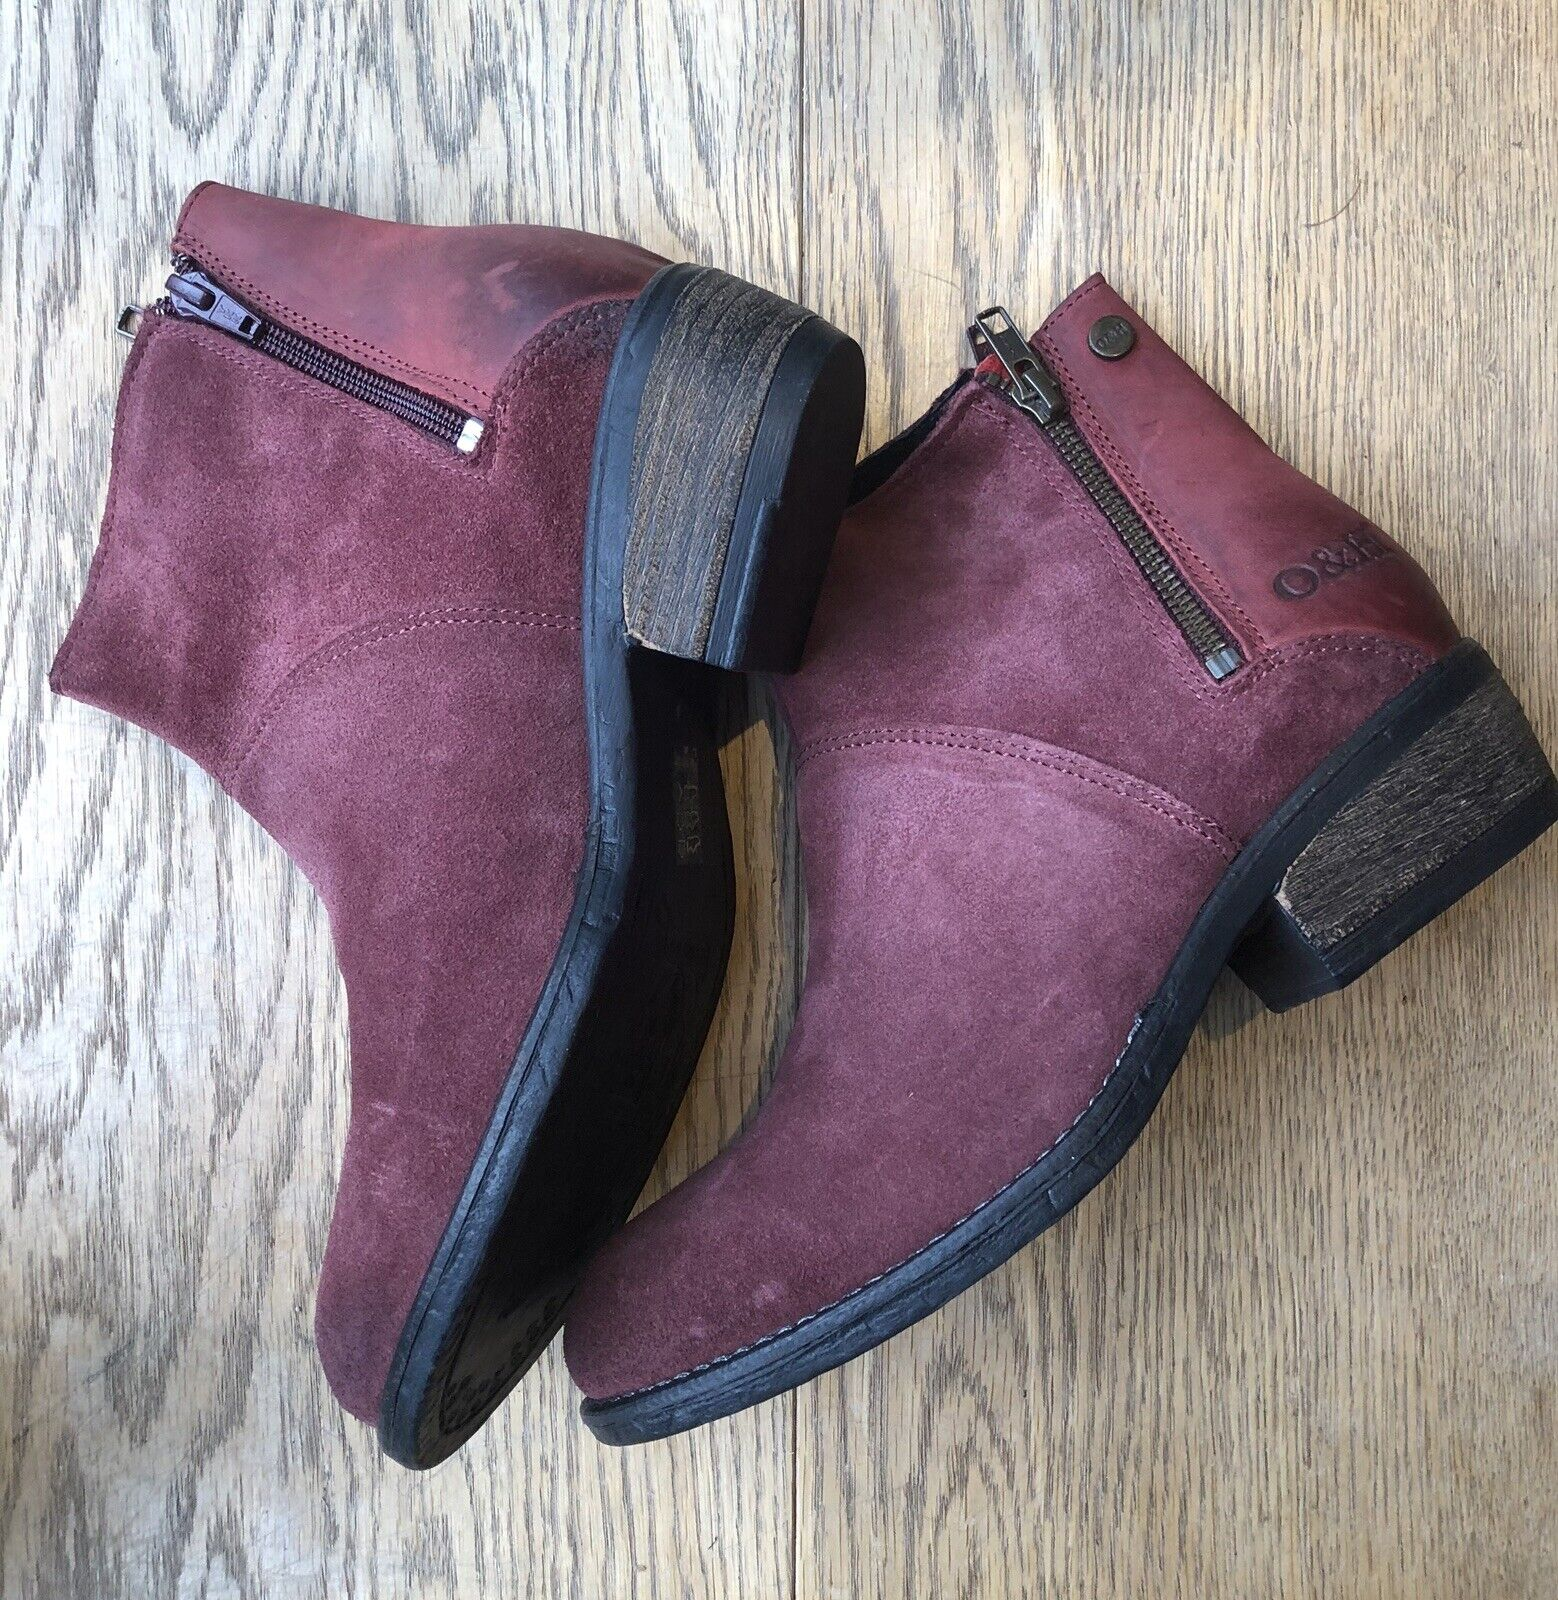 Oak And Hyde Rita Zip Up Ox Blood Red Size 4 (37) Ex Display Box 105